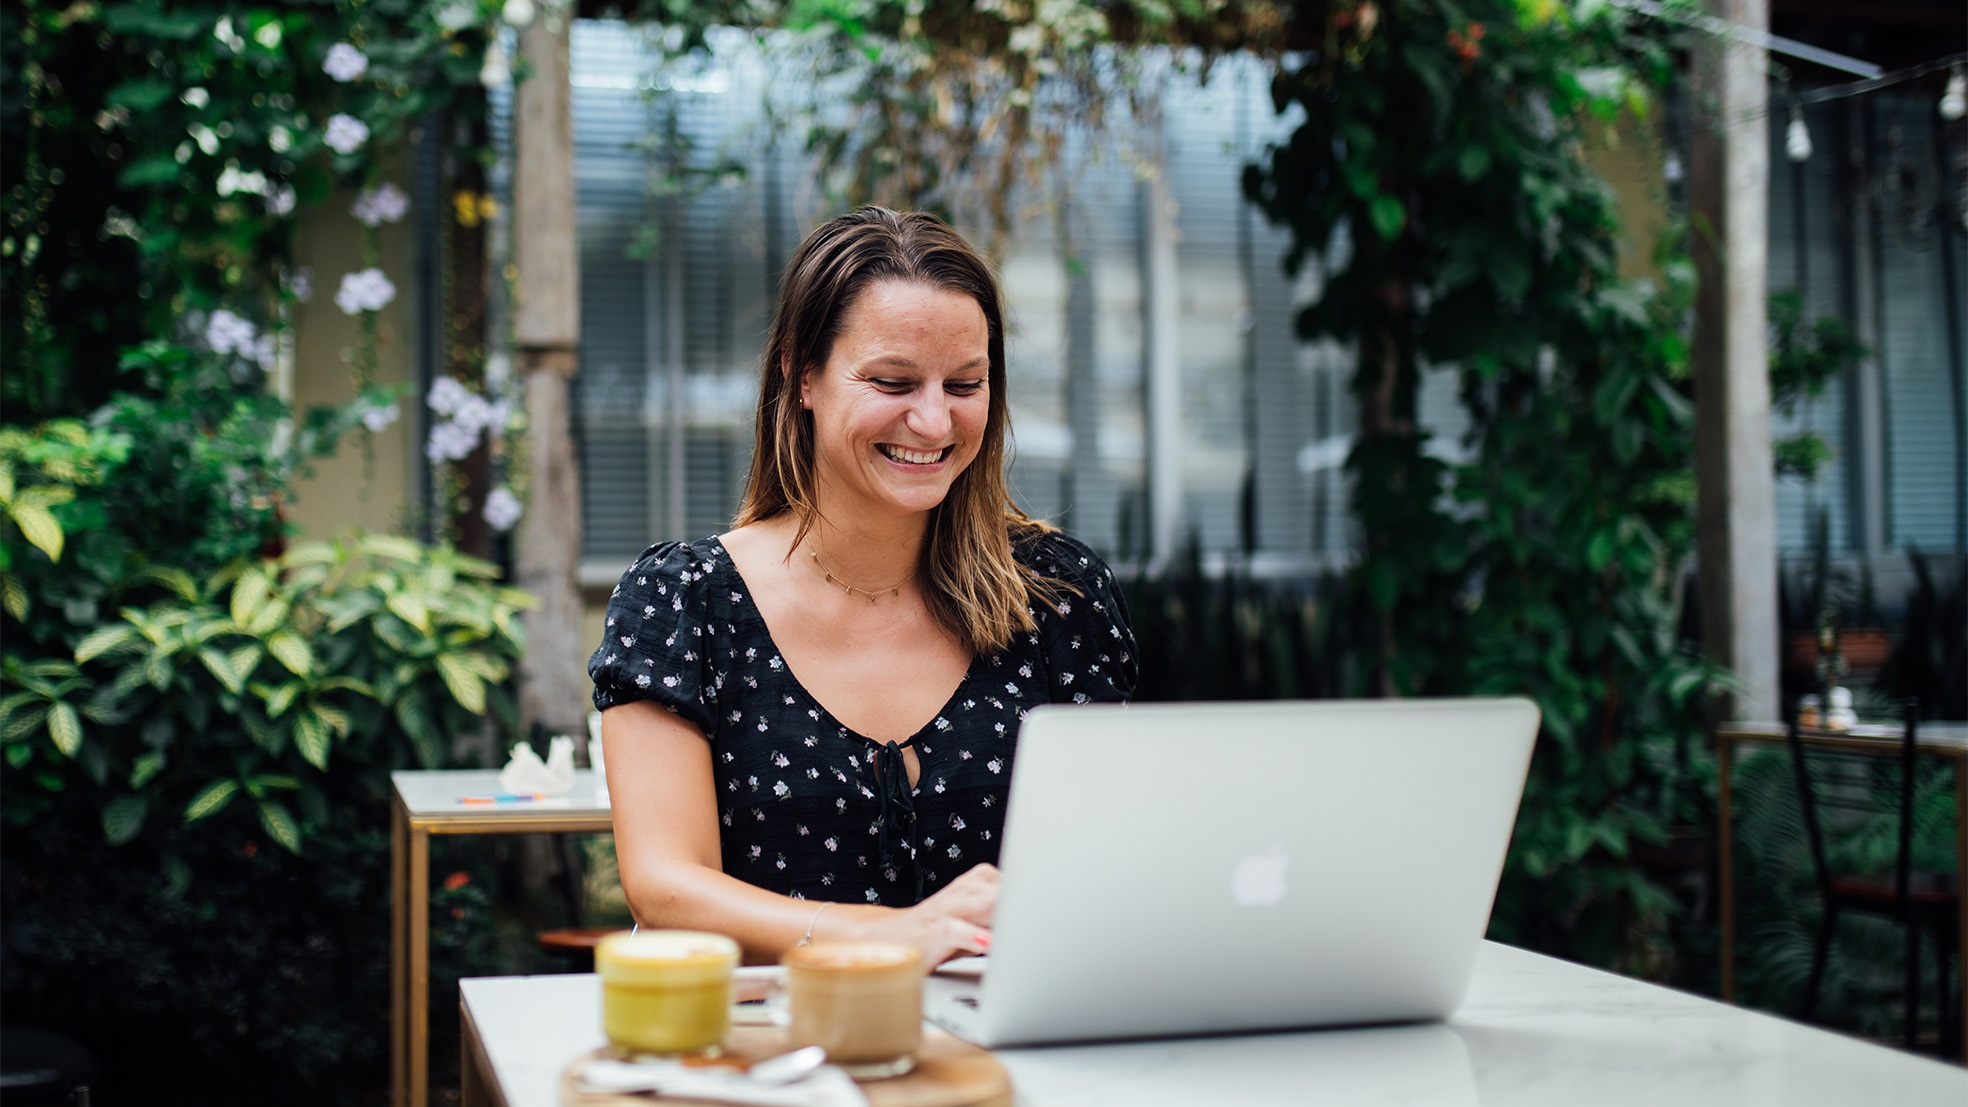 Digital nomad suzanne duijn